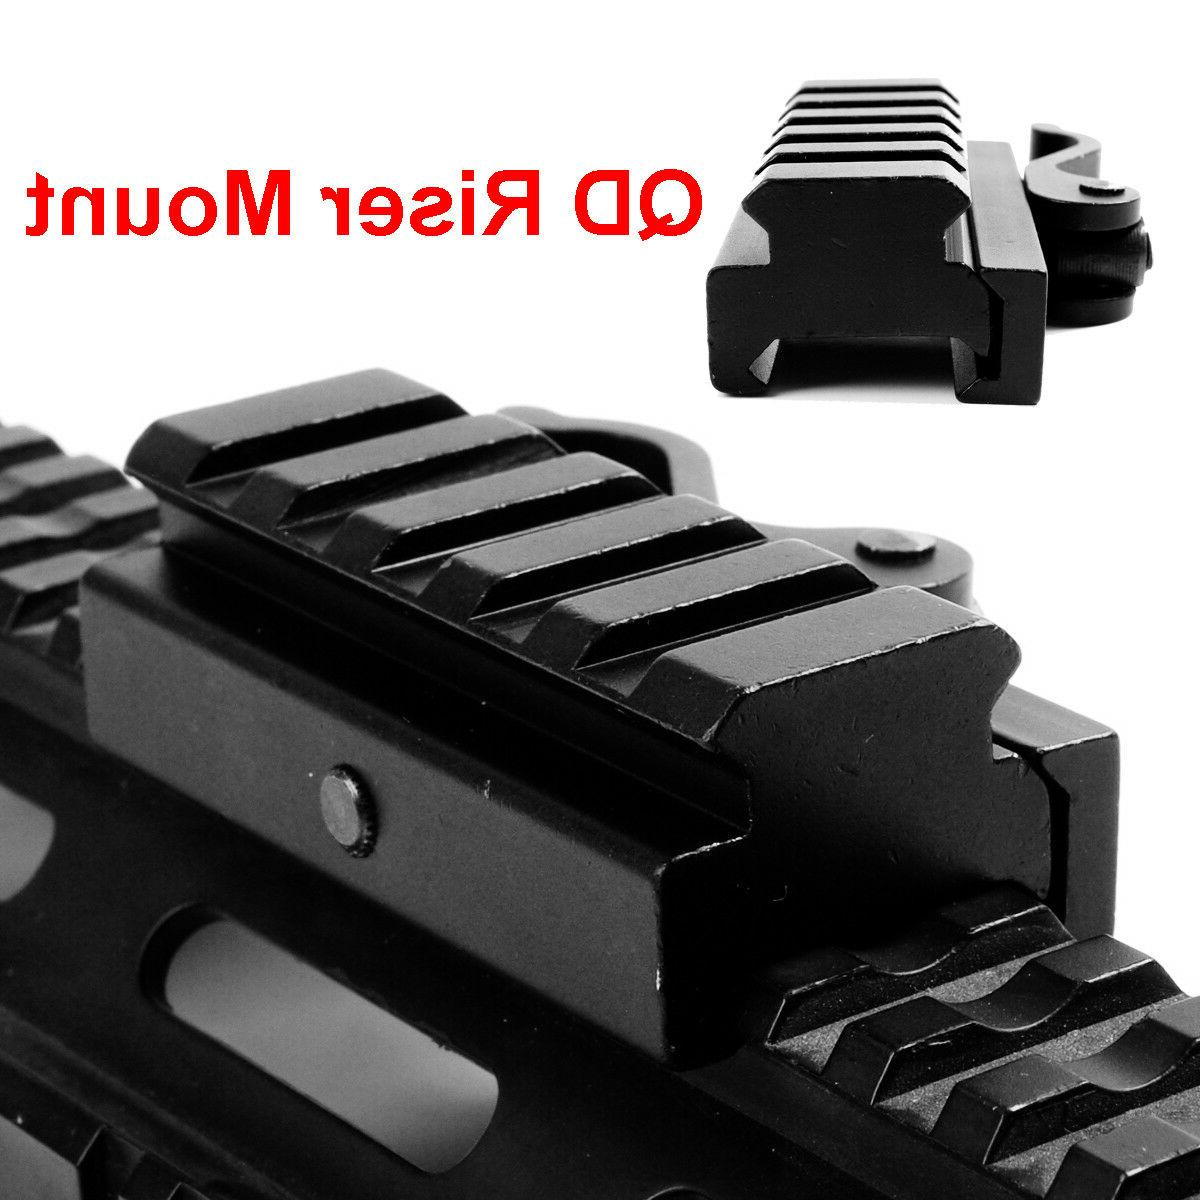 5 QD Riser Quick Mount Adapter for 20mm Picatinny Rail Base